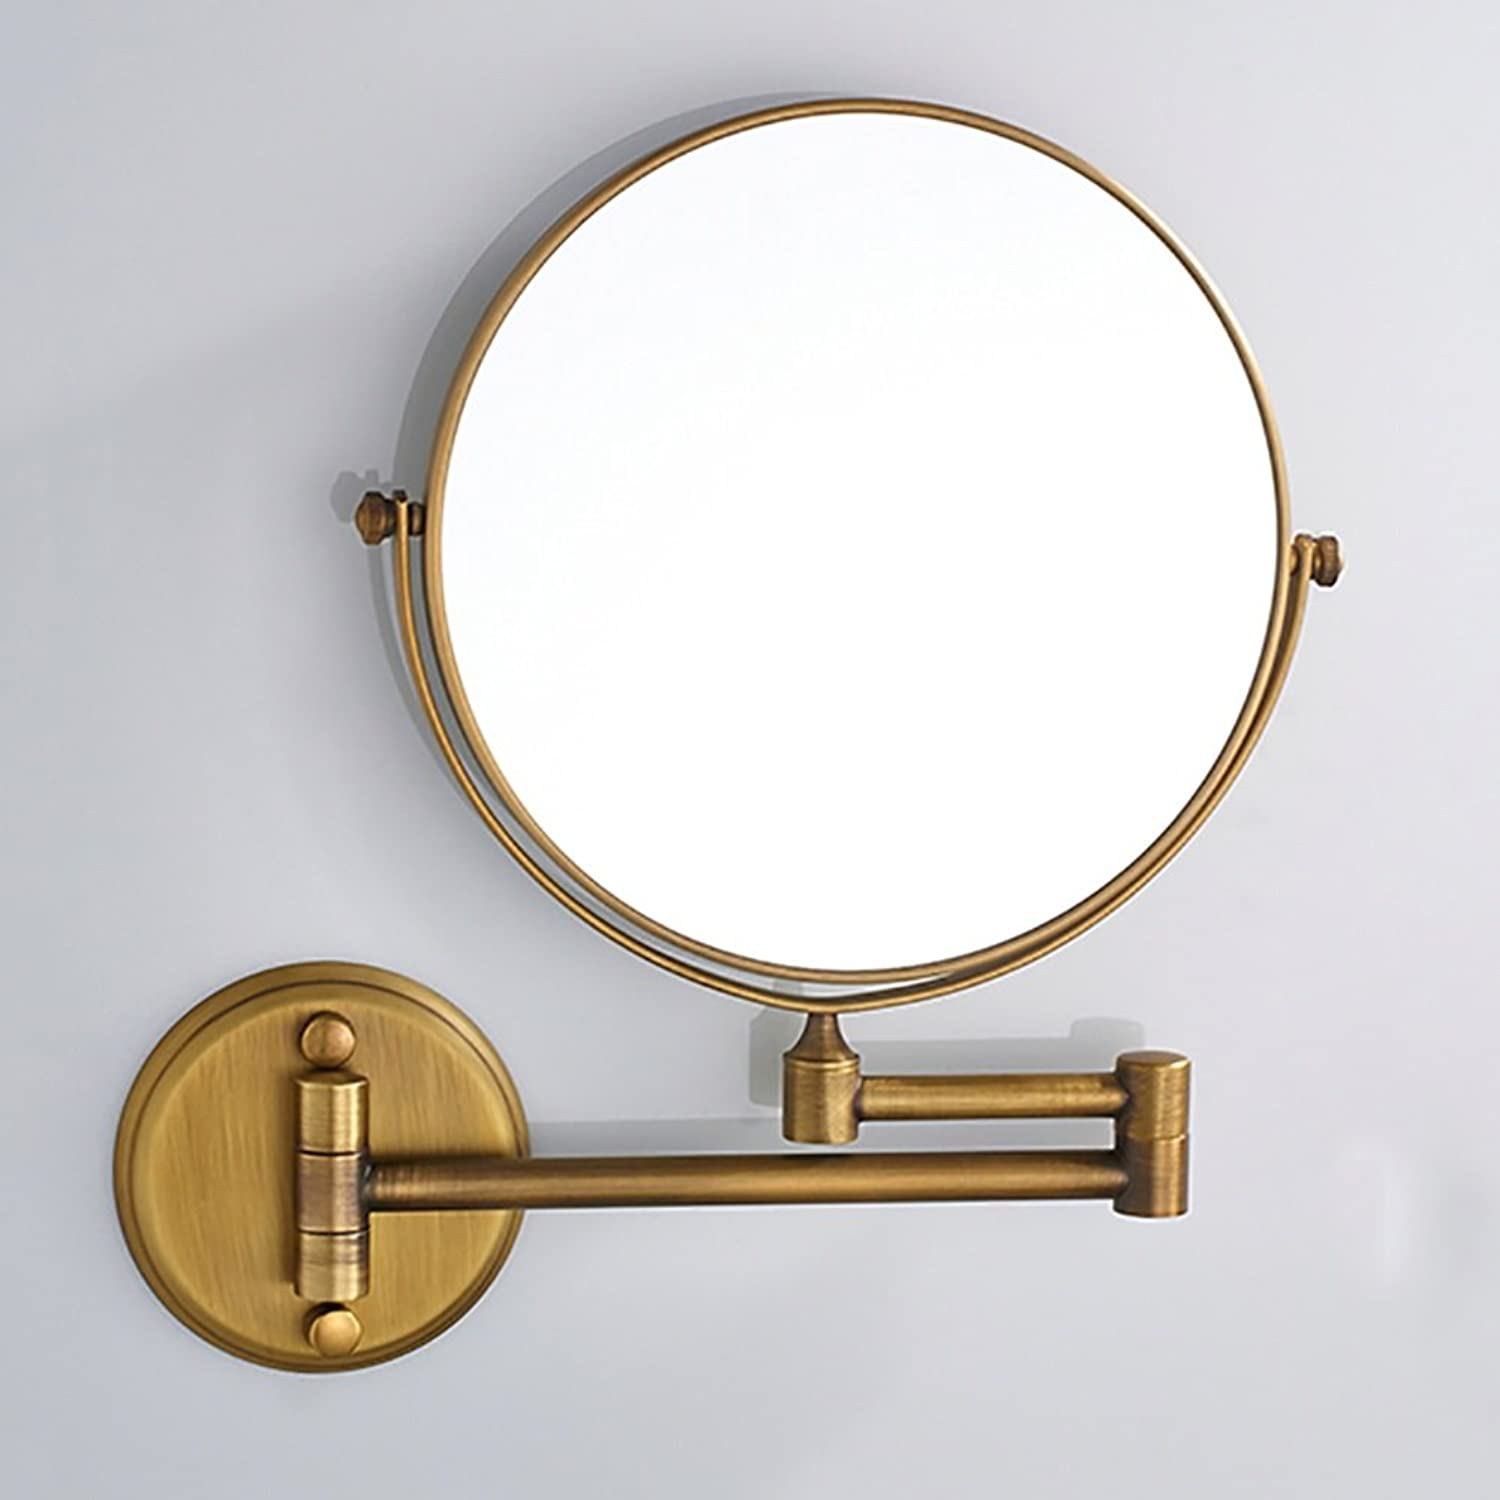 GUOWEI Mirror Double-Sided Wall Hanging 3X Magnification redatable Collapsible Stainless Steel Bathroom Dressing 3 colors (color   gold, Size   20x20cm)